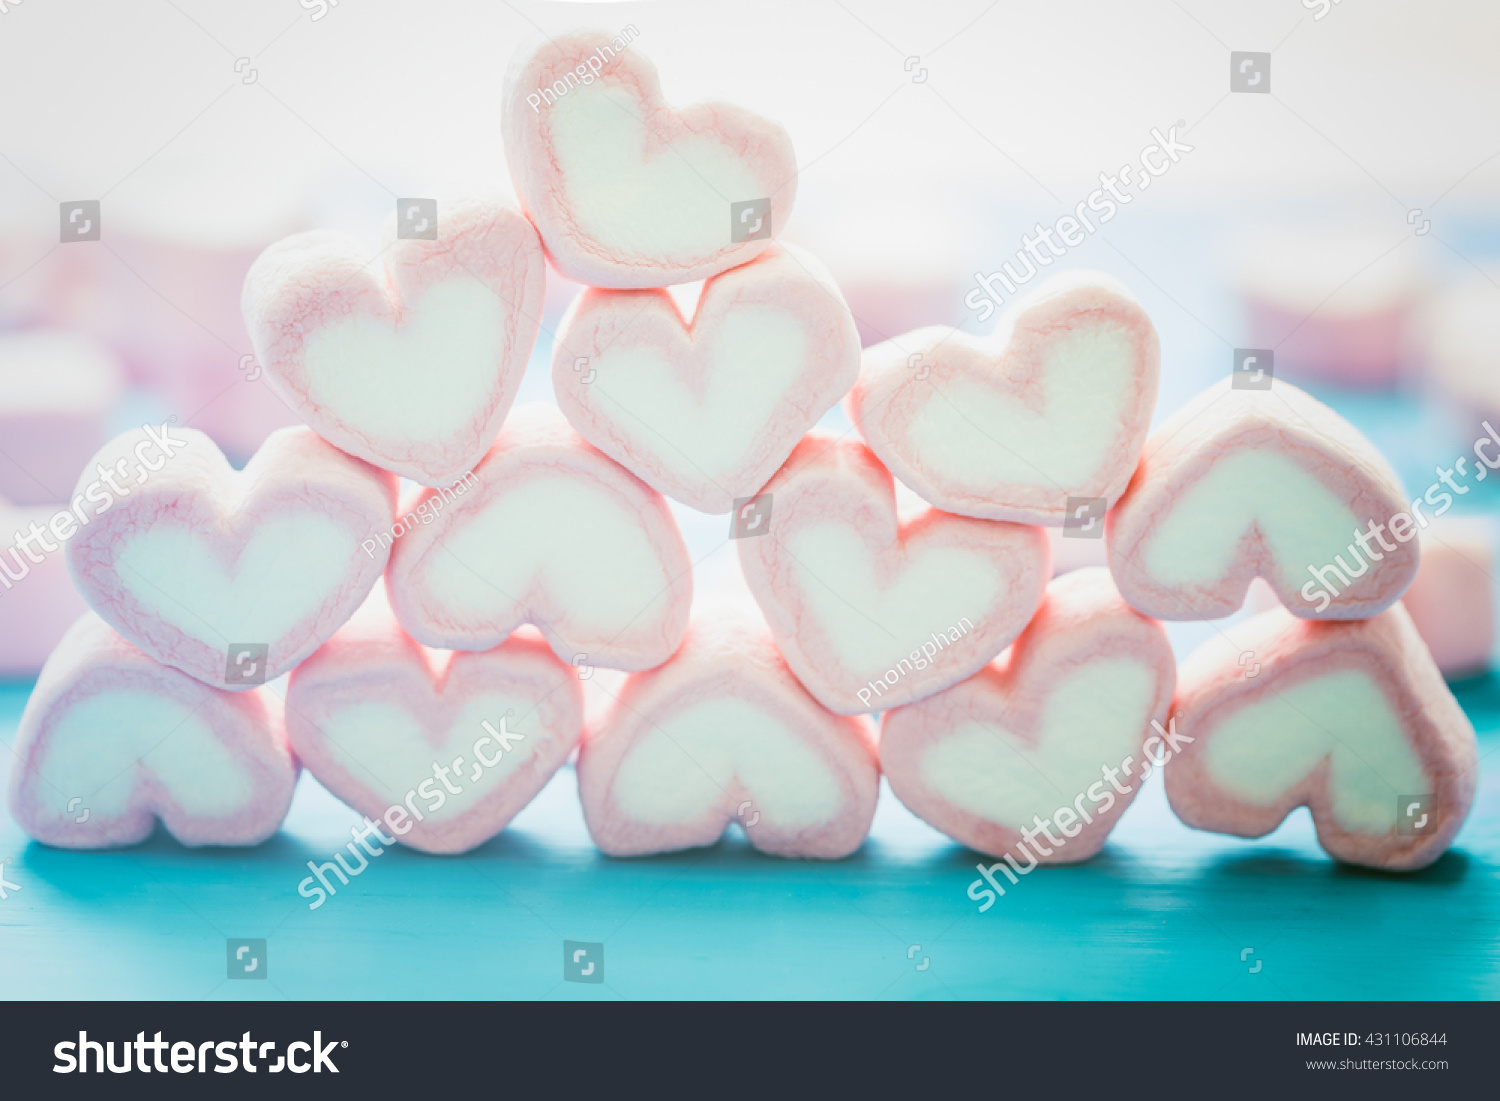 Pink heart marshmallow sweet love theme stock photo for Love theme images